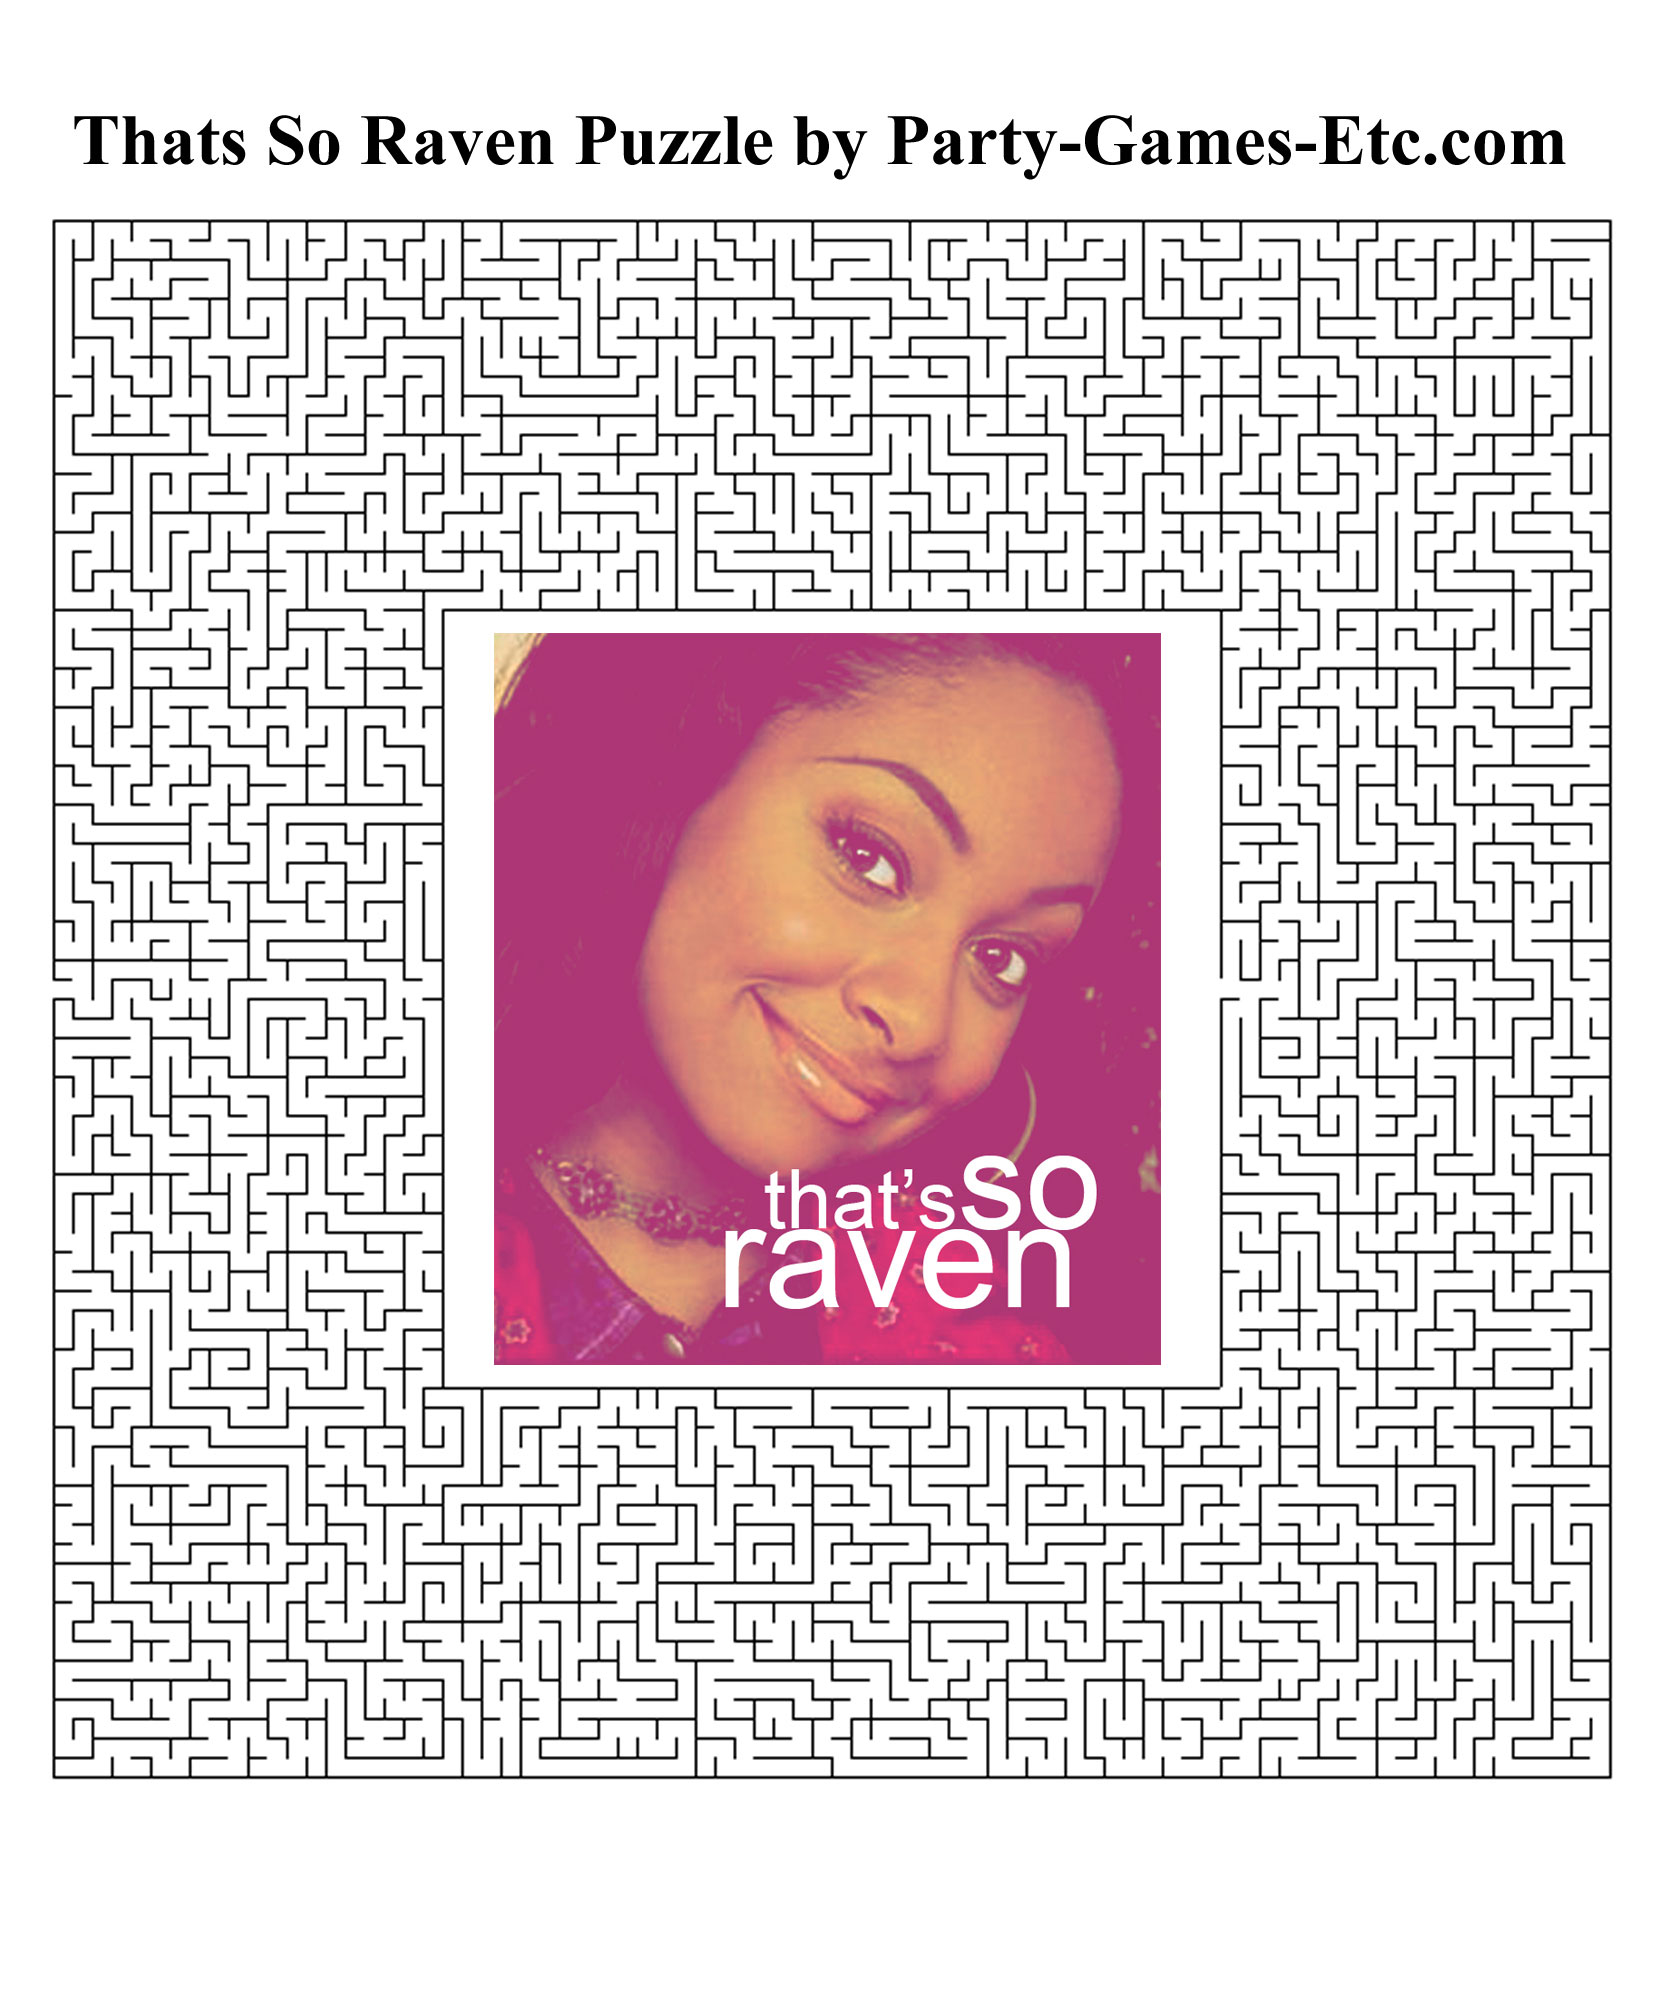 Free Printable Thats So Raven Party Game and Pen and Paper Activity